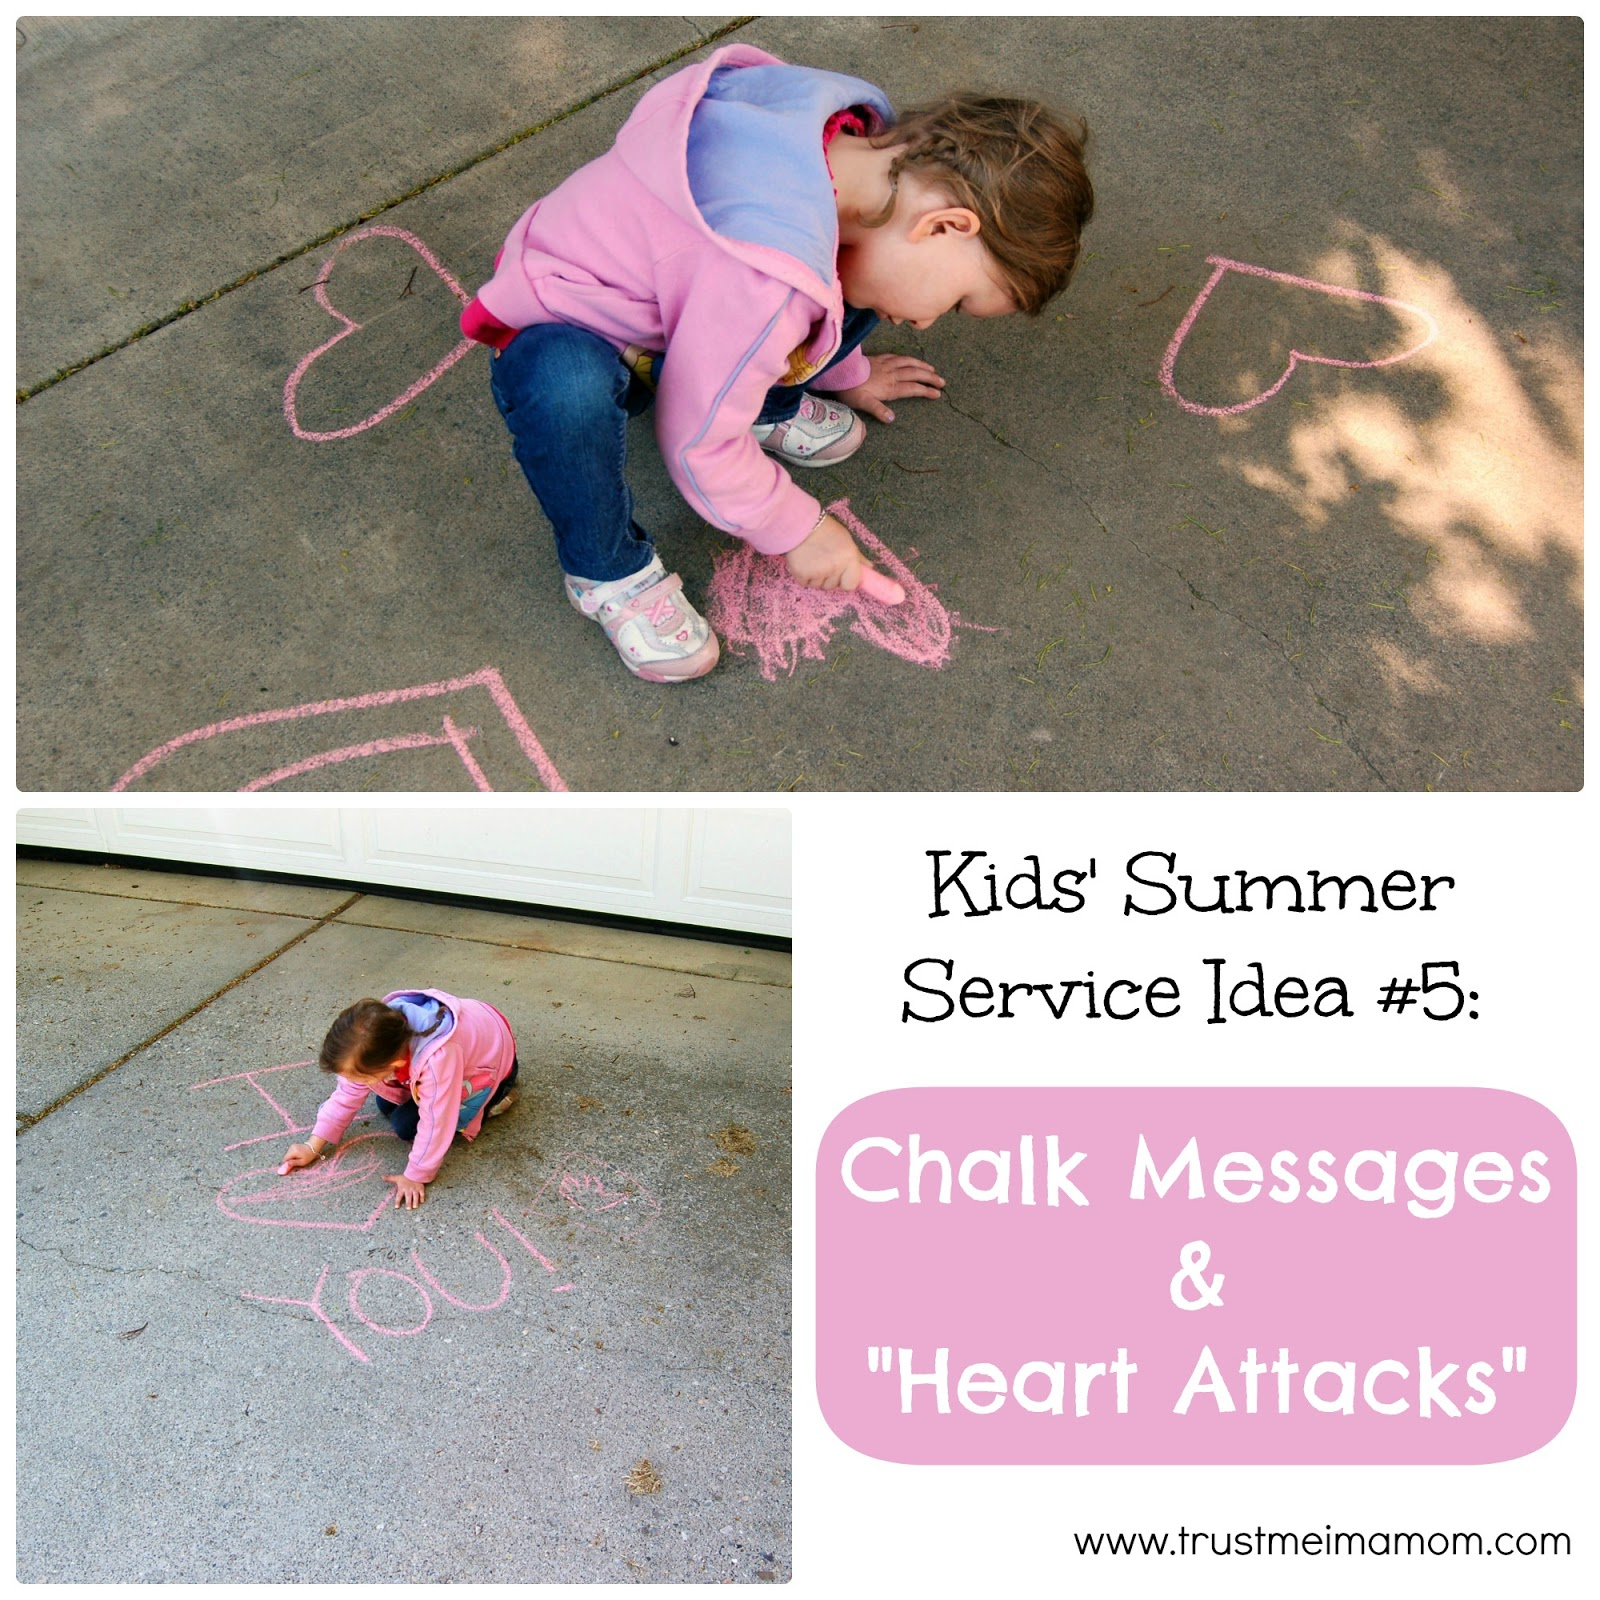 Fun Ways to Serve with Your Kids This Summer: Idea #5 - use chalk to make someone's day!